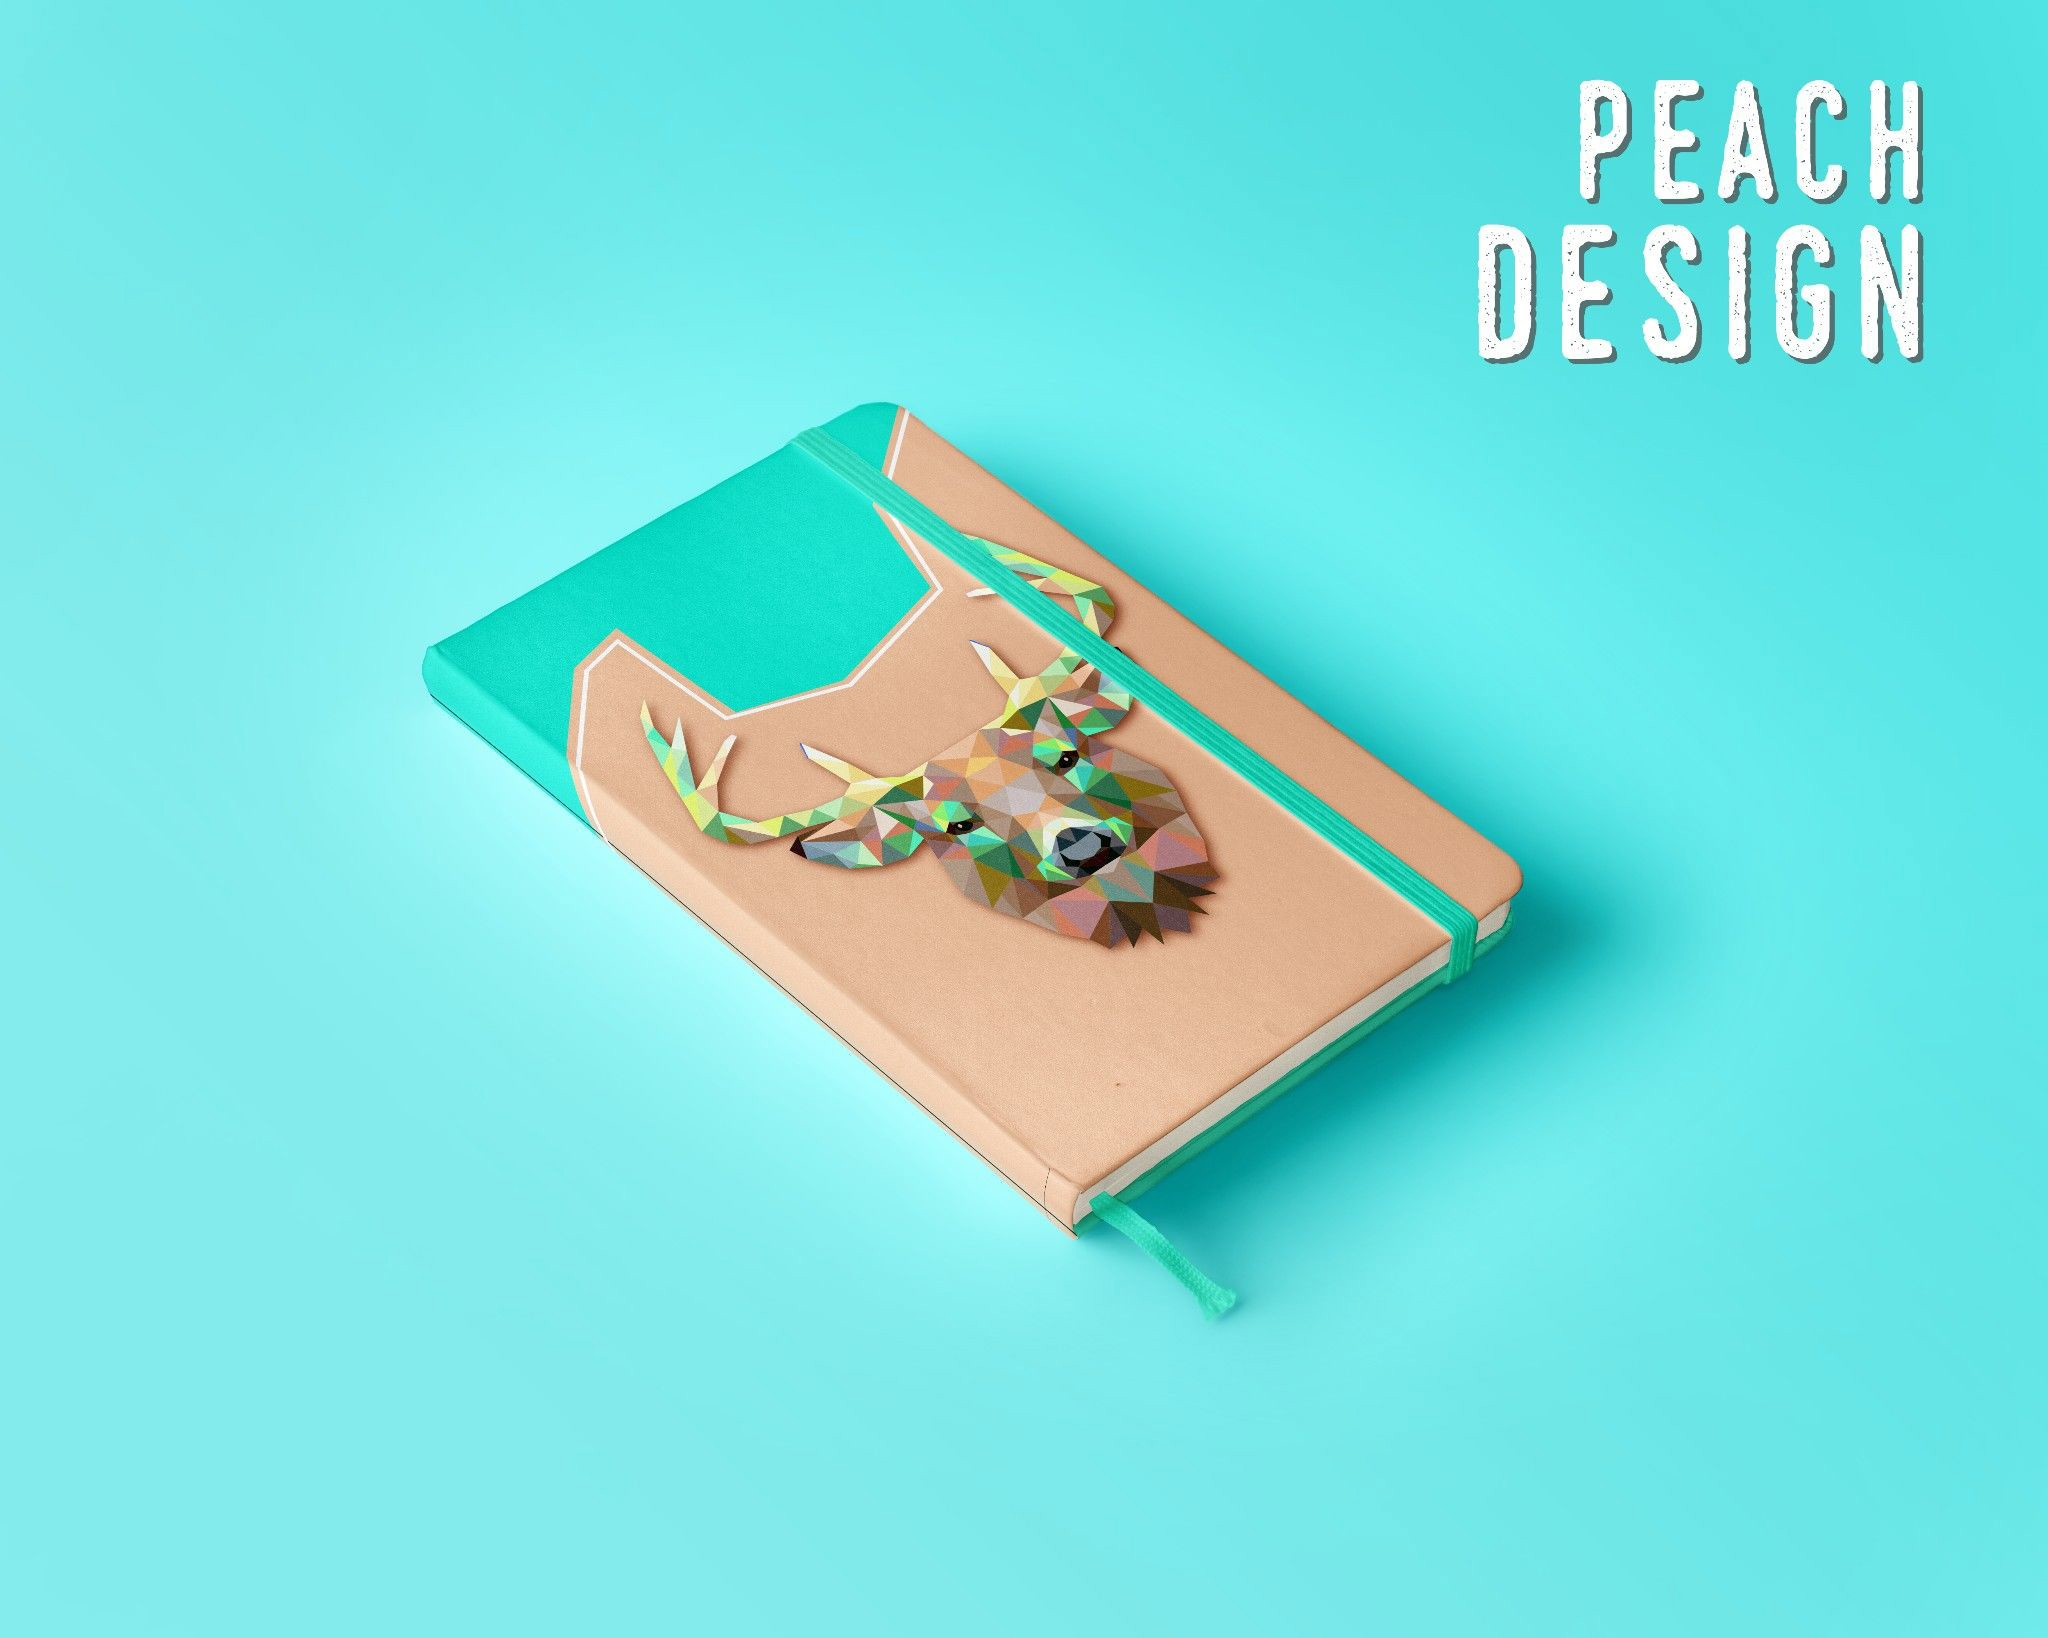 PEACH Design - NOTEBOOK